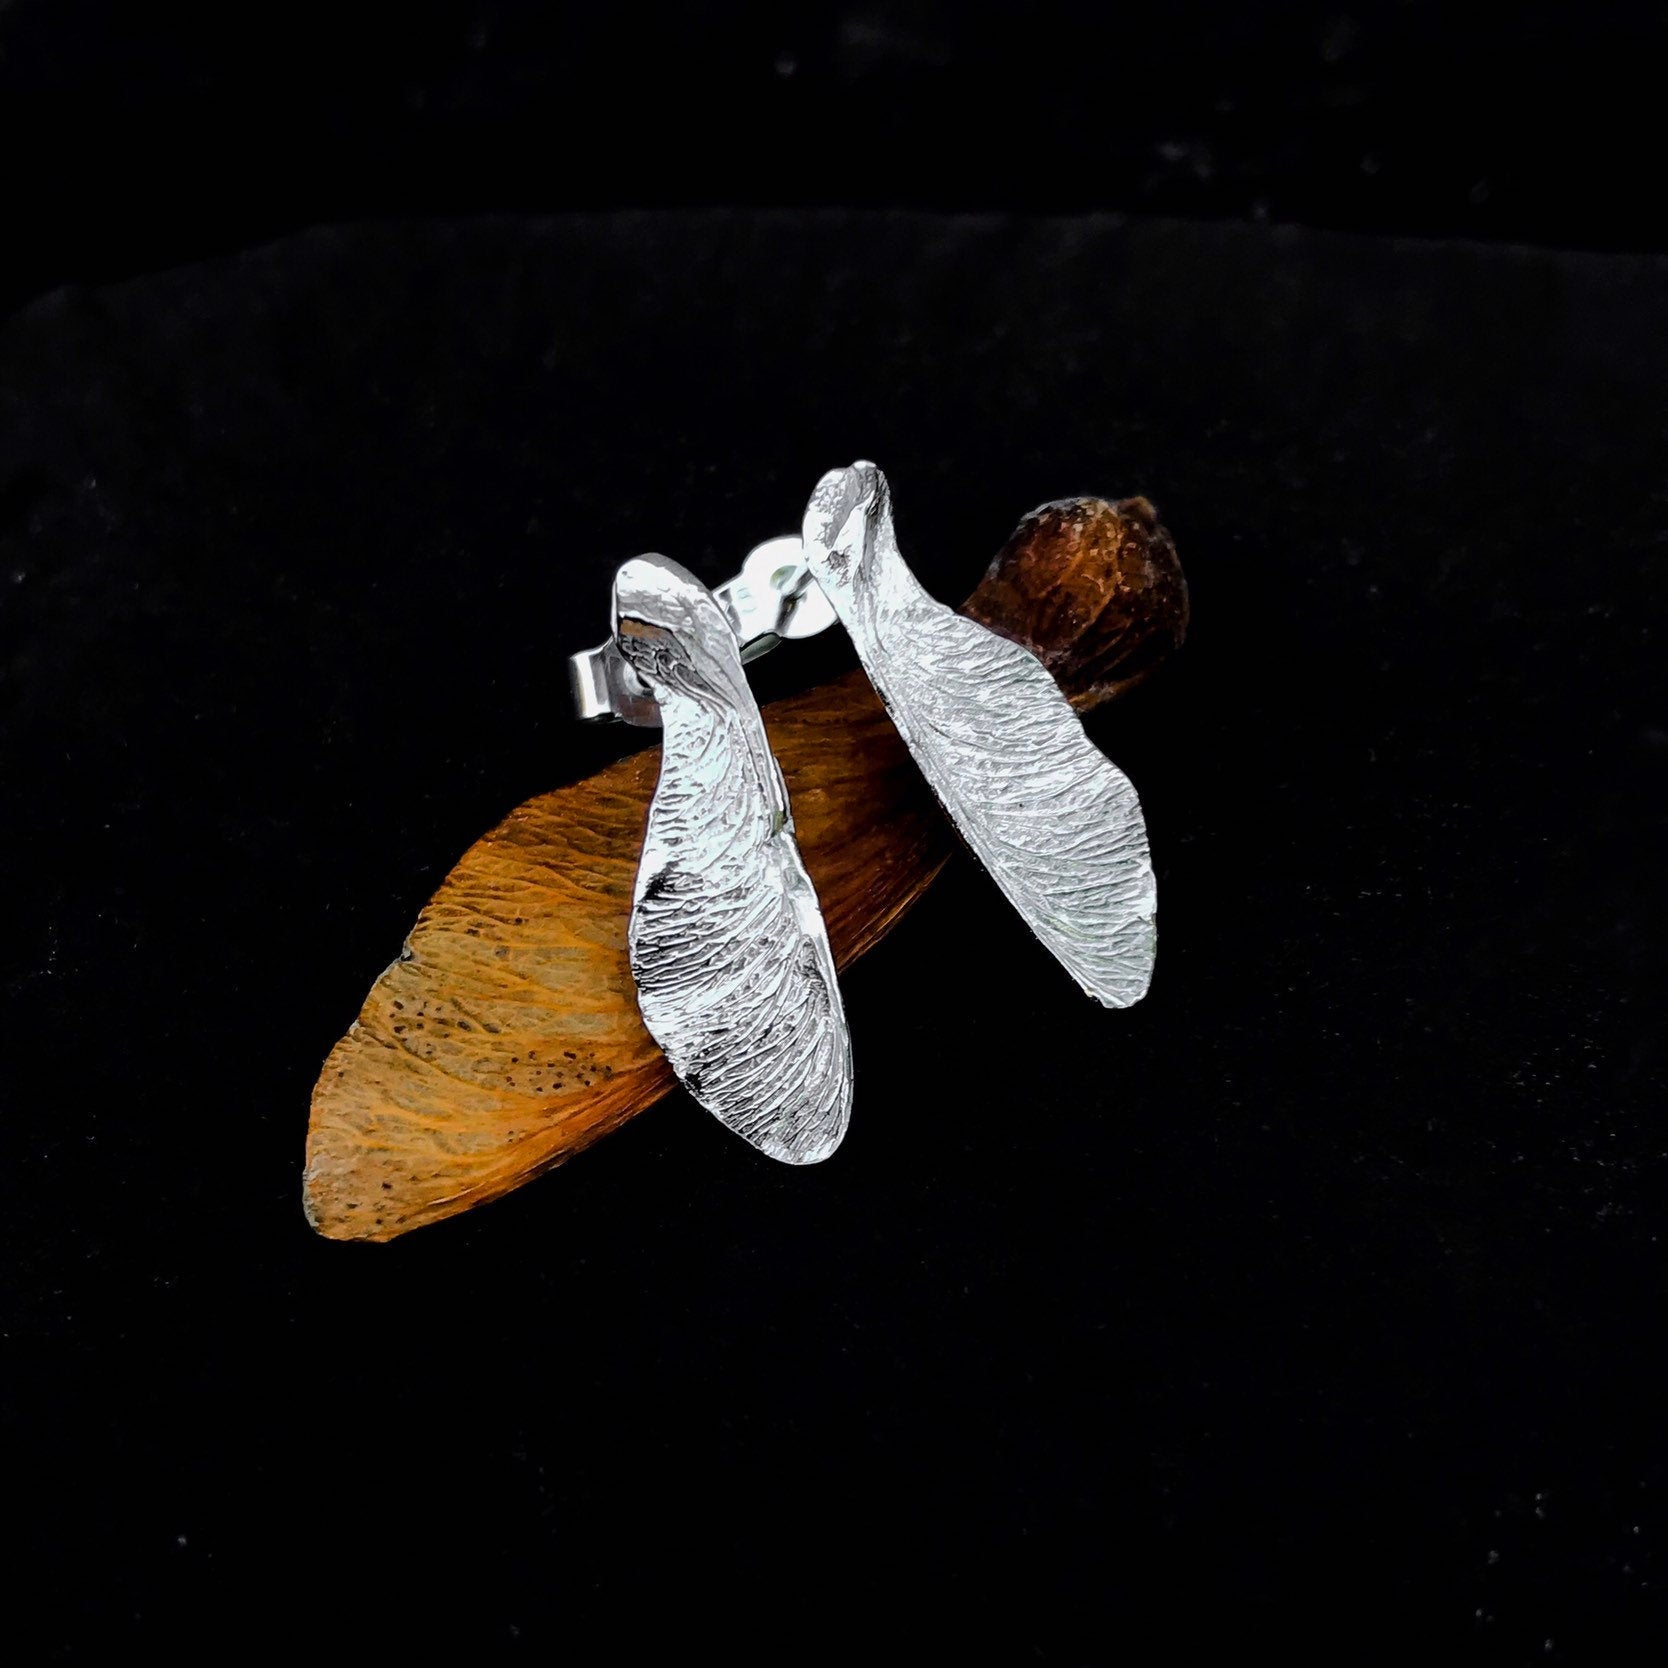 Silver Sycamore Seed Earrings